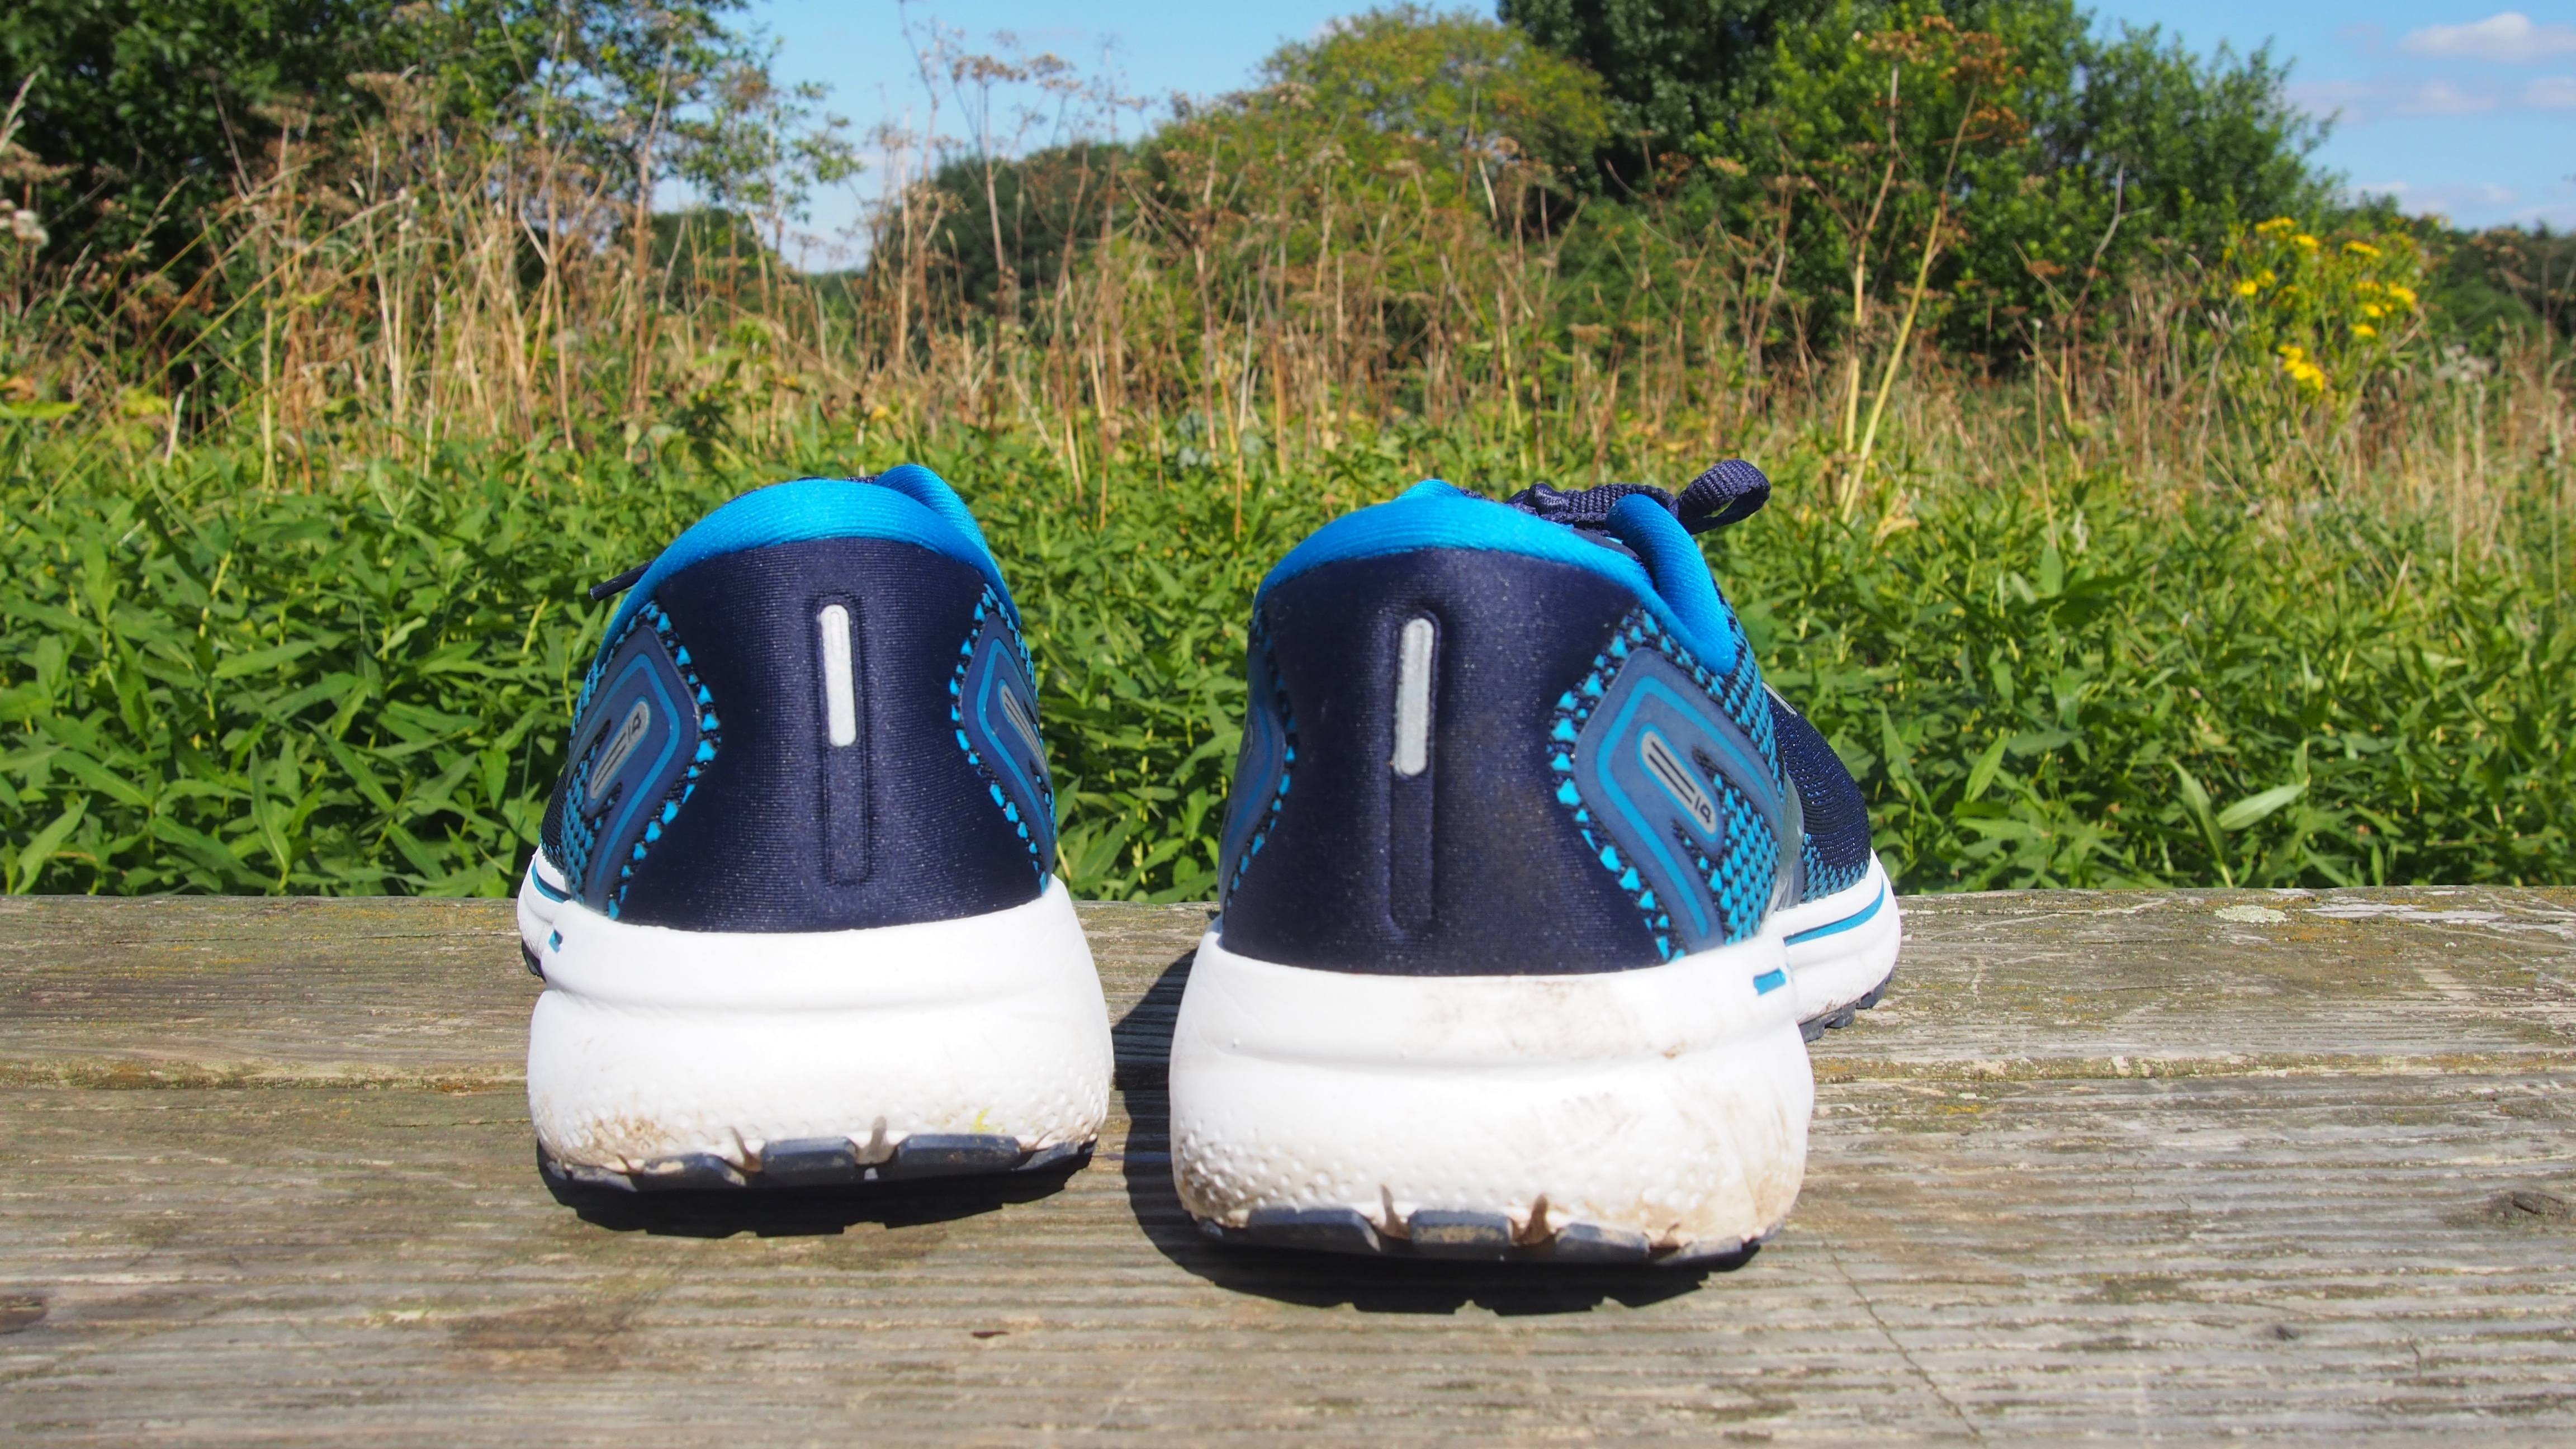 Pair of Brooks Ghost 14 running shoes, viewed from behind